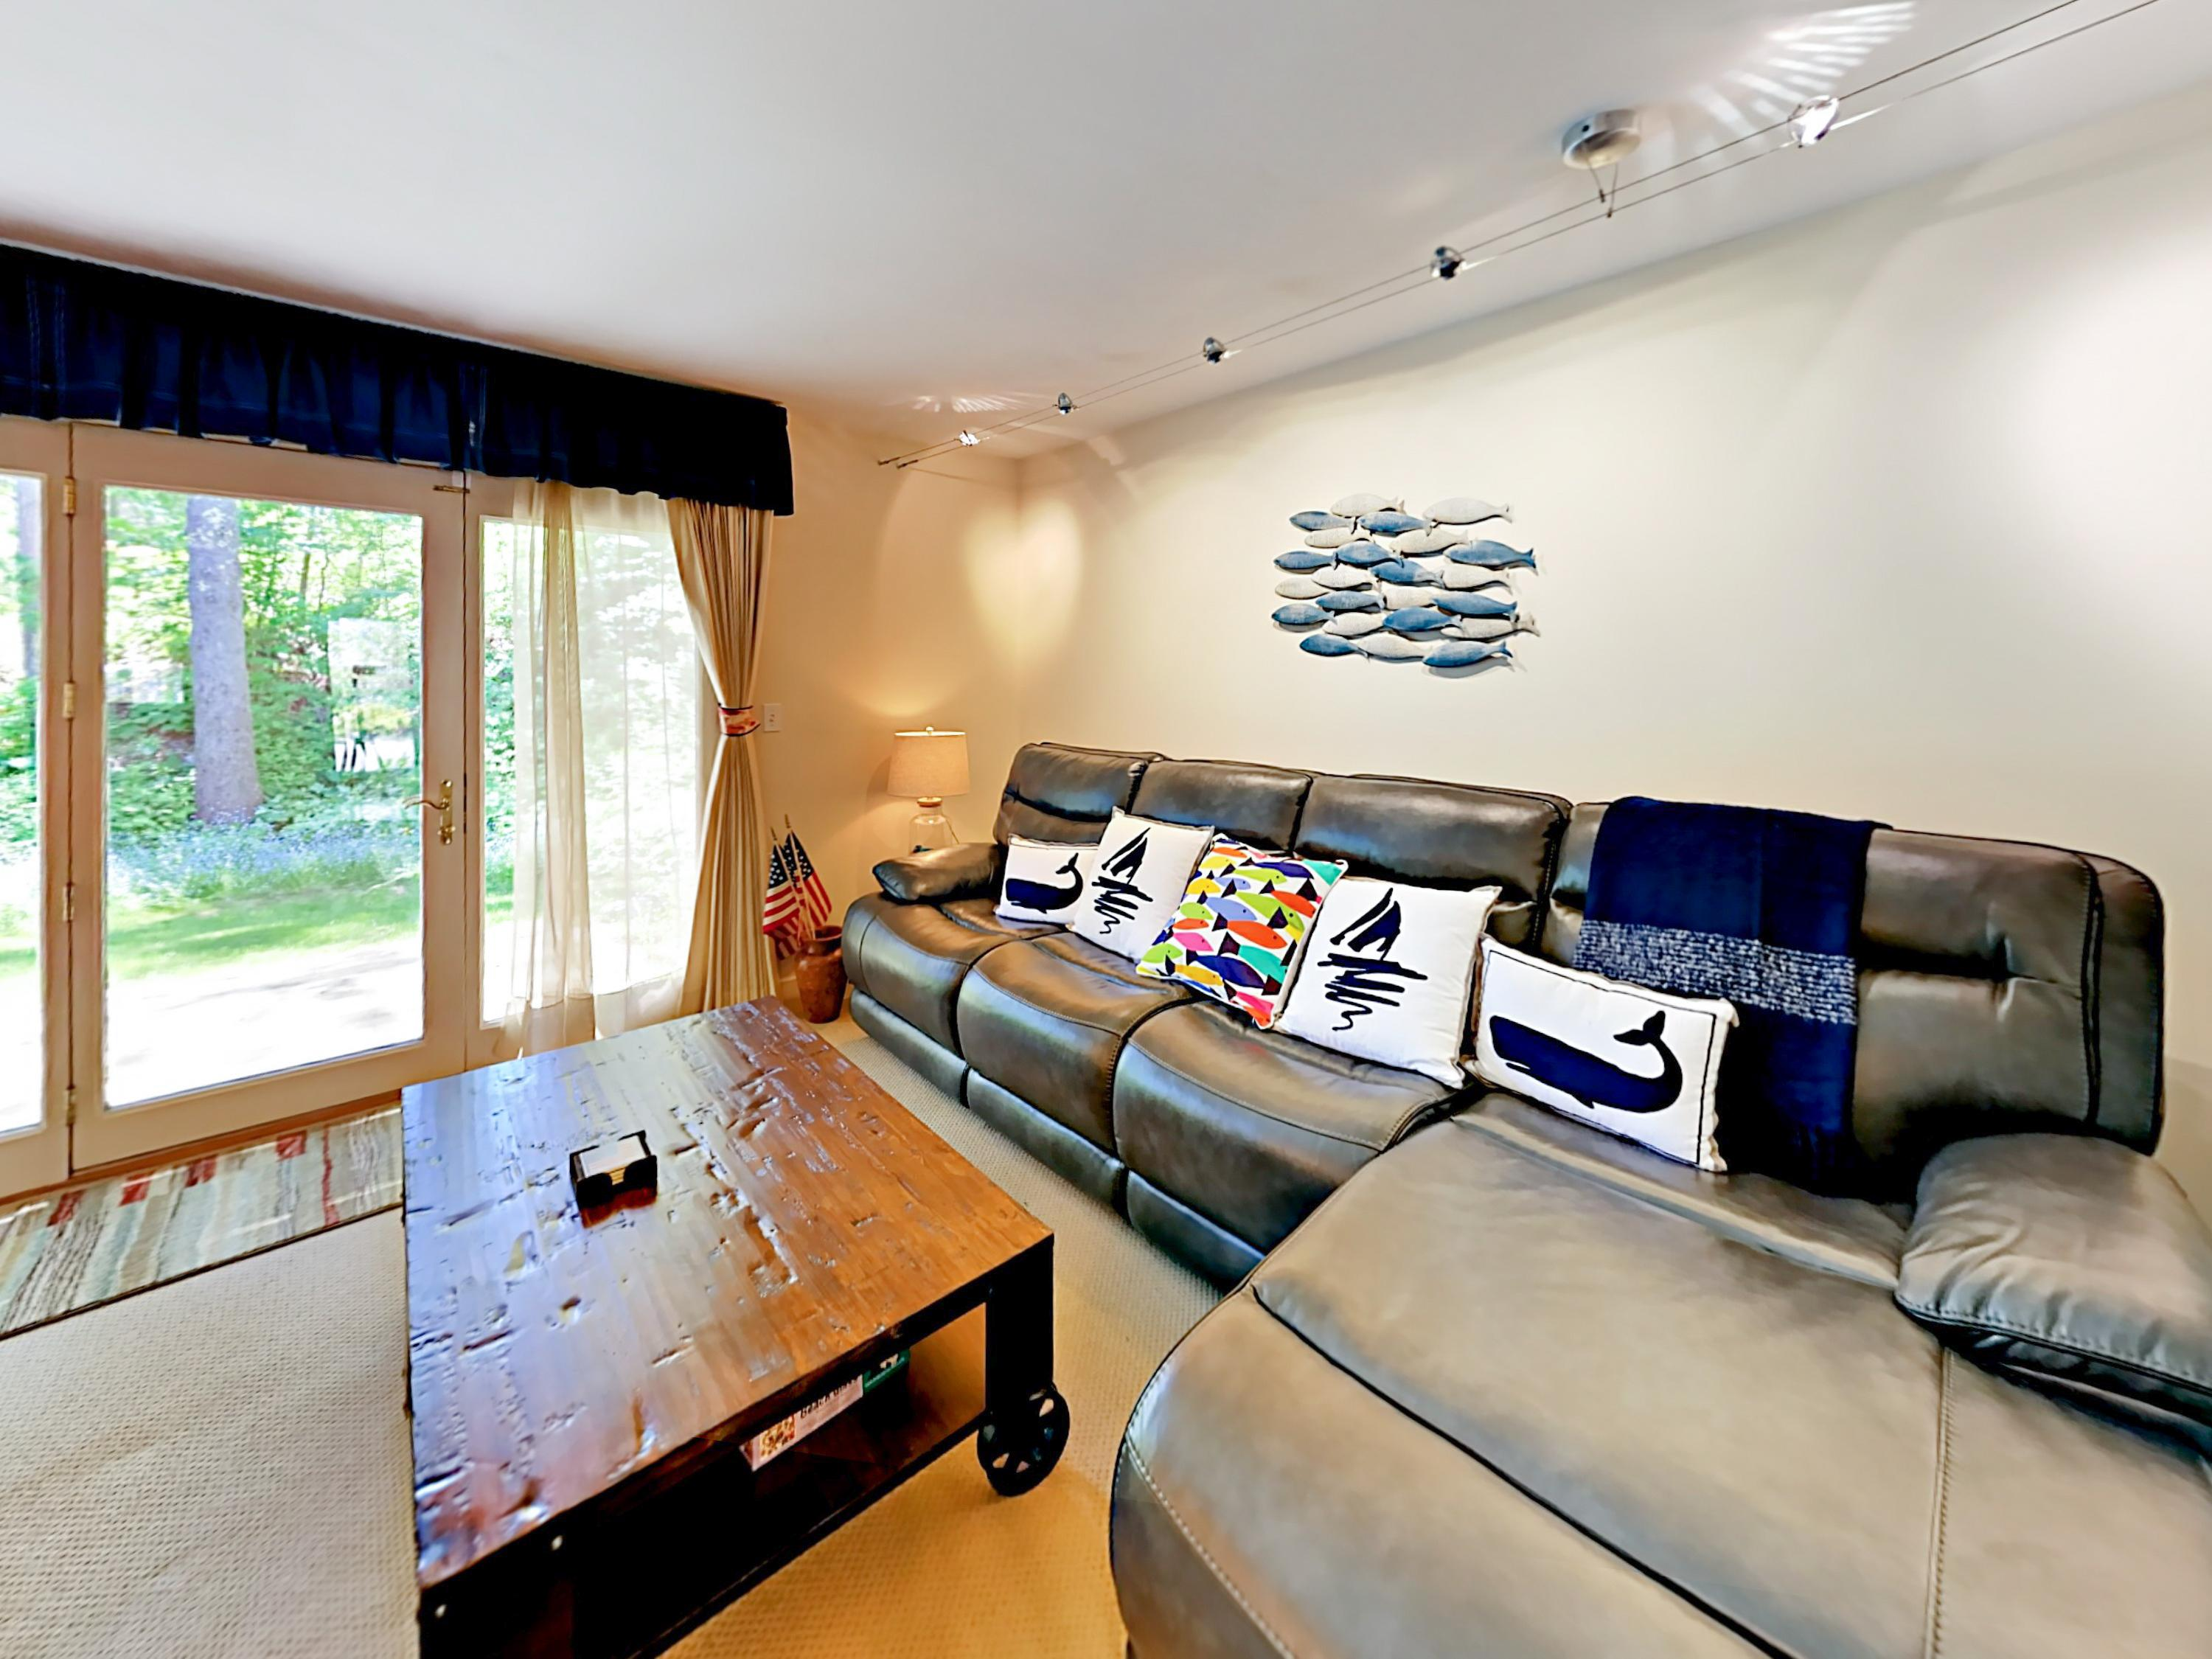 Welcome to Boothbay Harbor! Large black sofa offers comfy seating for 4 in the living area. Condo is professionally managed by TurnKey Vacation Rentals.